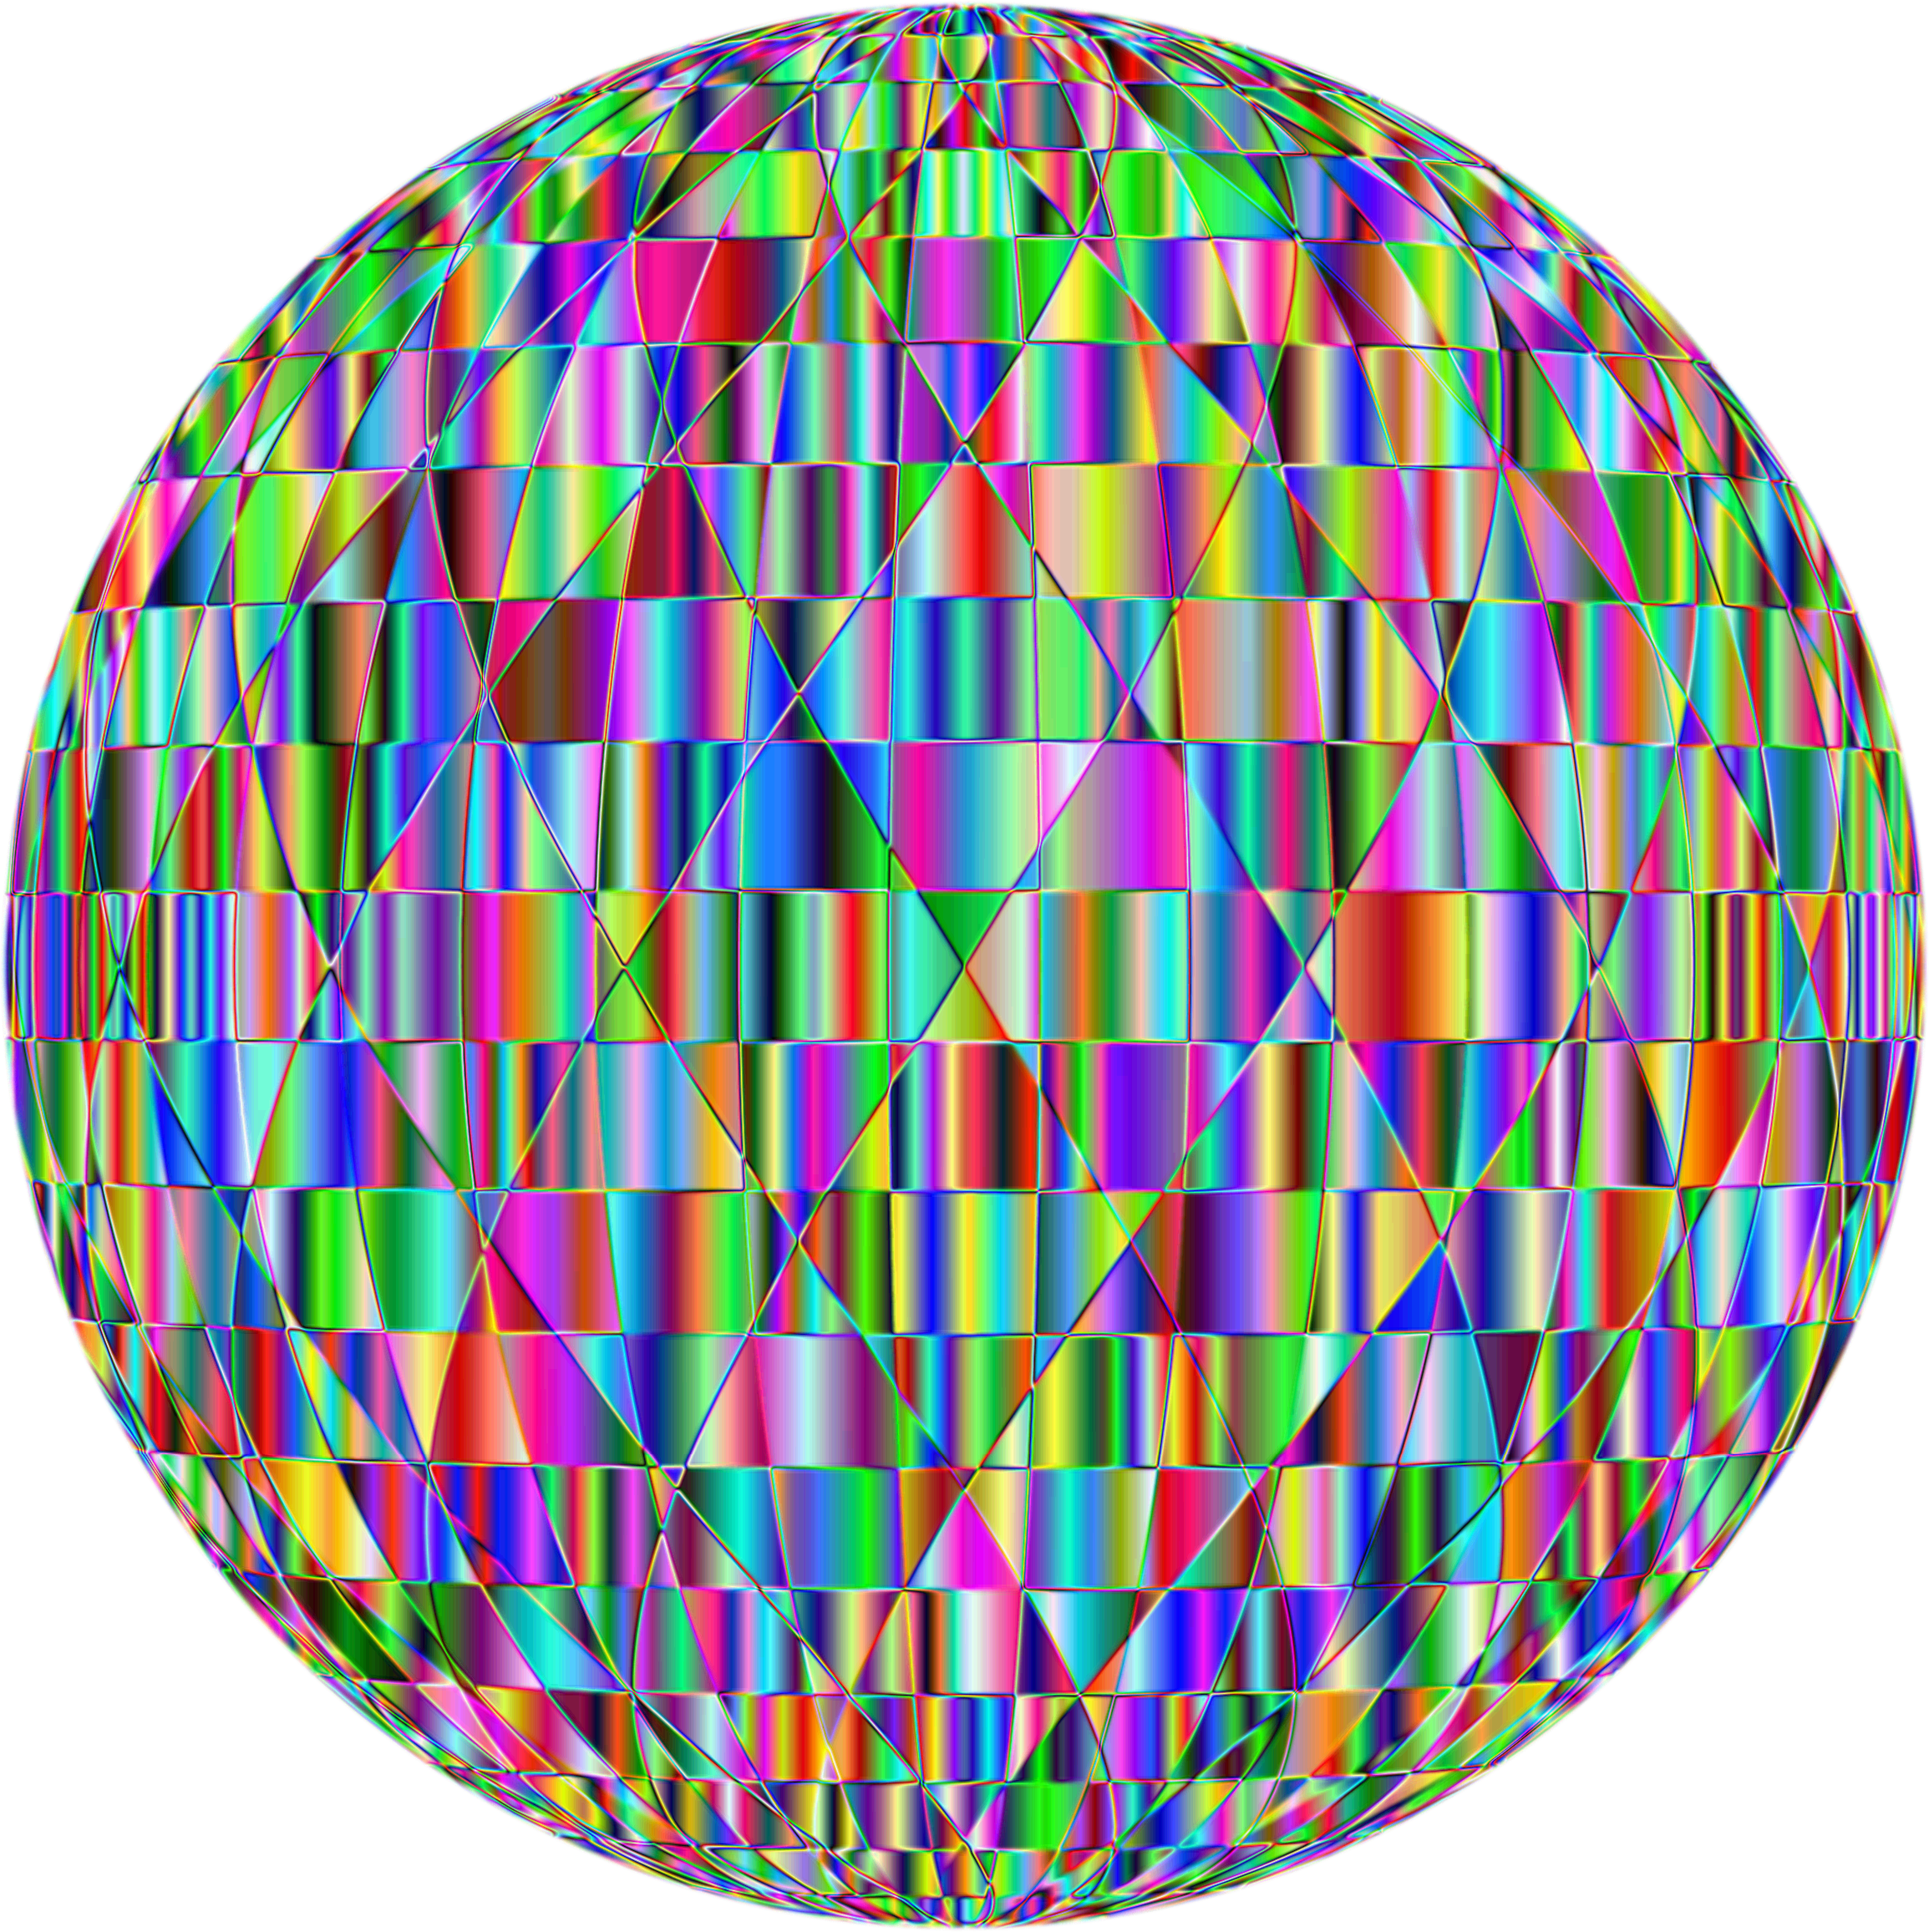 Vector abstracts sphere. Prismatic abstract geometric enhanced